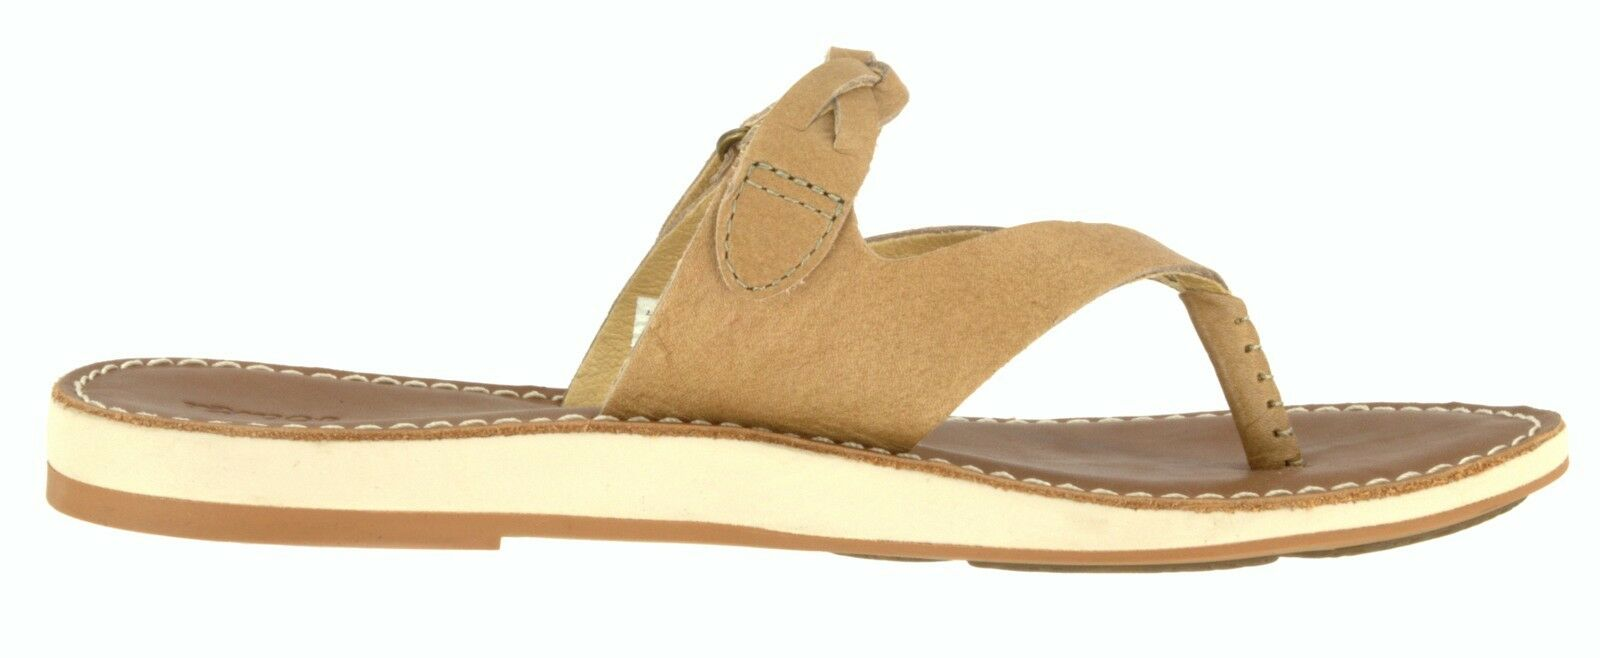 OLUKAI SAMPLE 20353 WOMEN'S KAHIKOLU LEATHER LEATHER LEATHER FLIP FLOP THONG SLIDE SANDAL US 7 3ad5d2